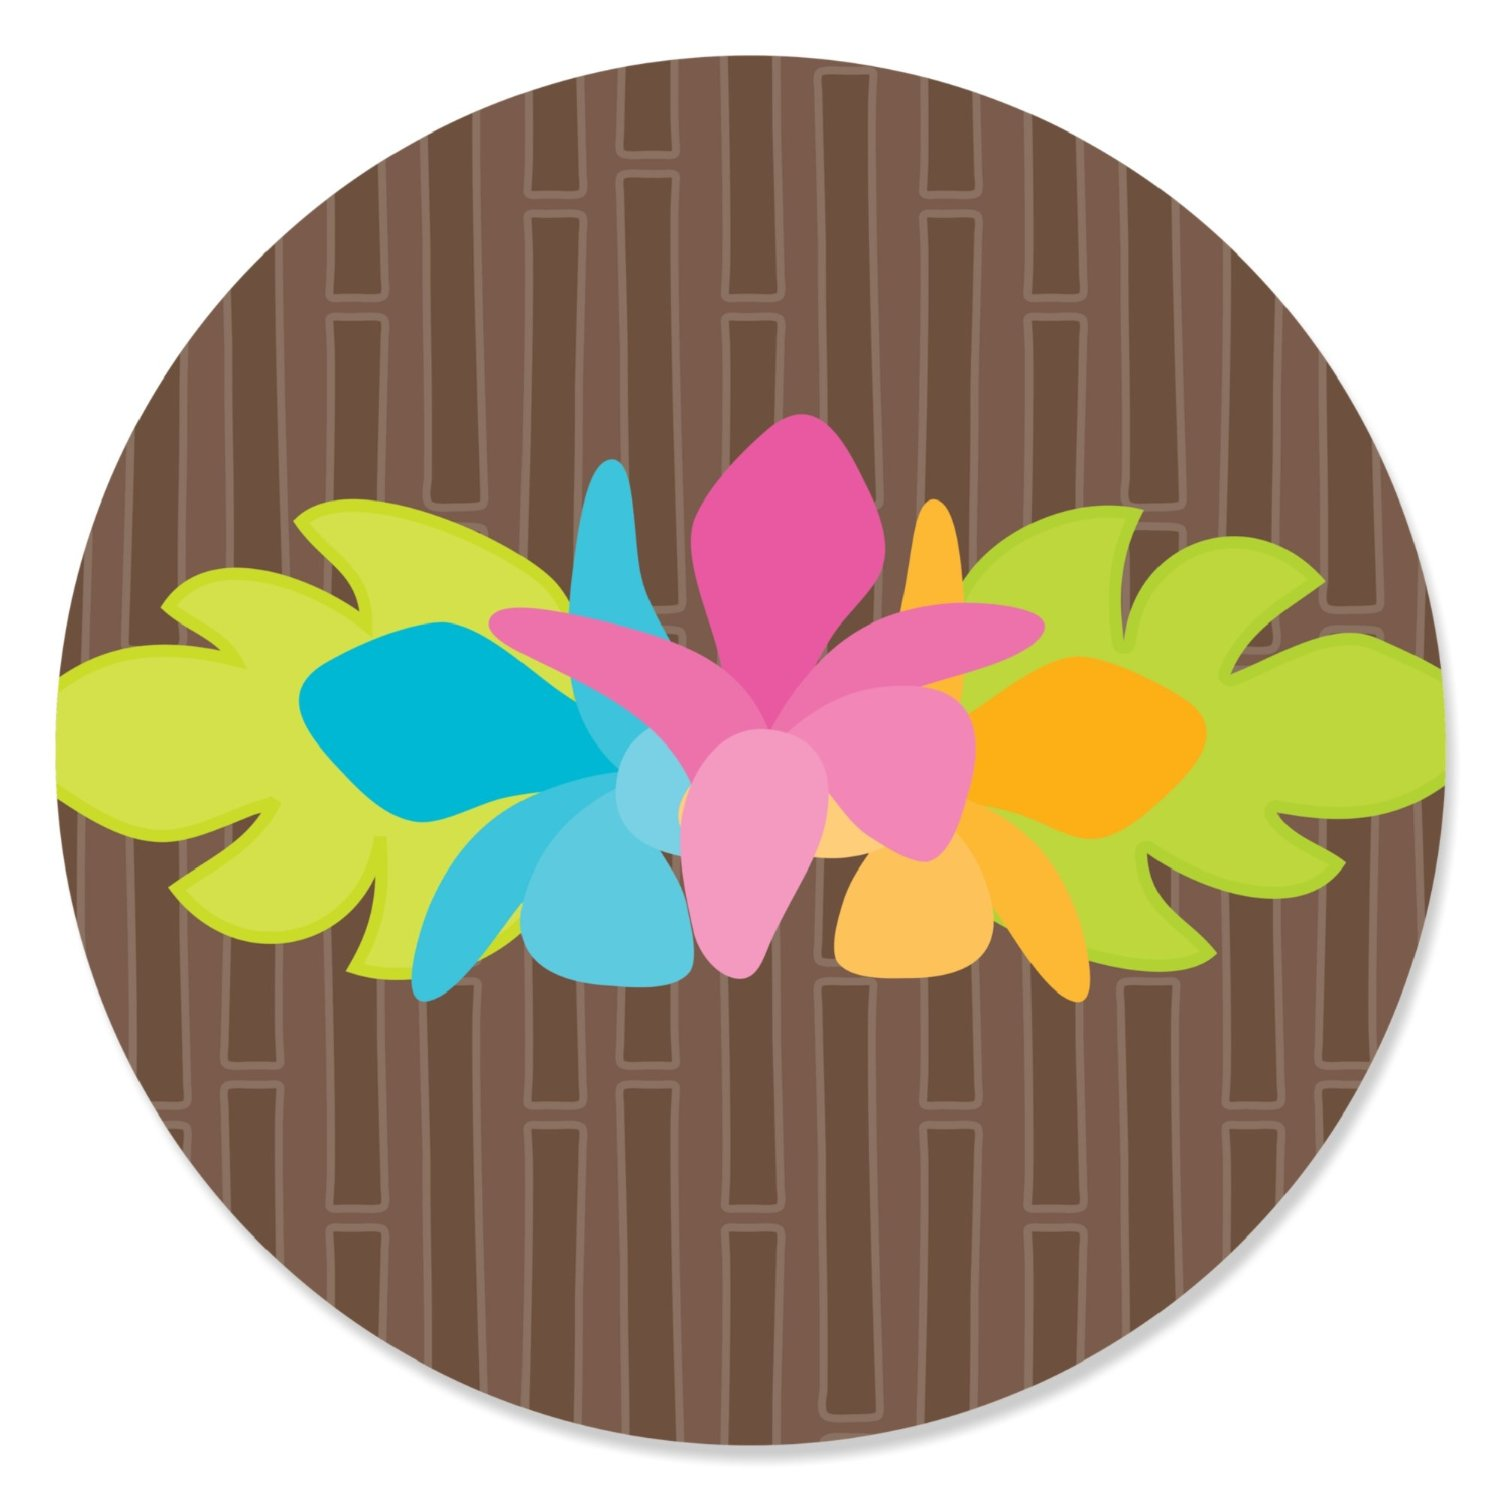 Luau - Party Circle Sticker Labels - 24 Count